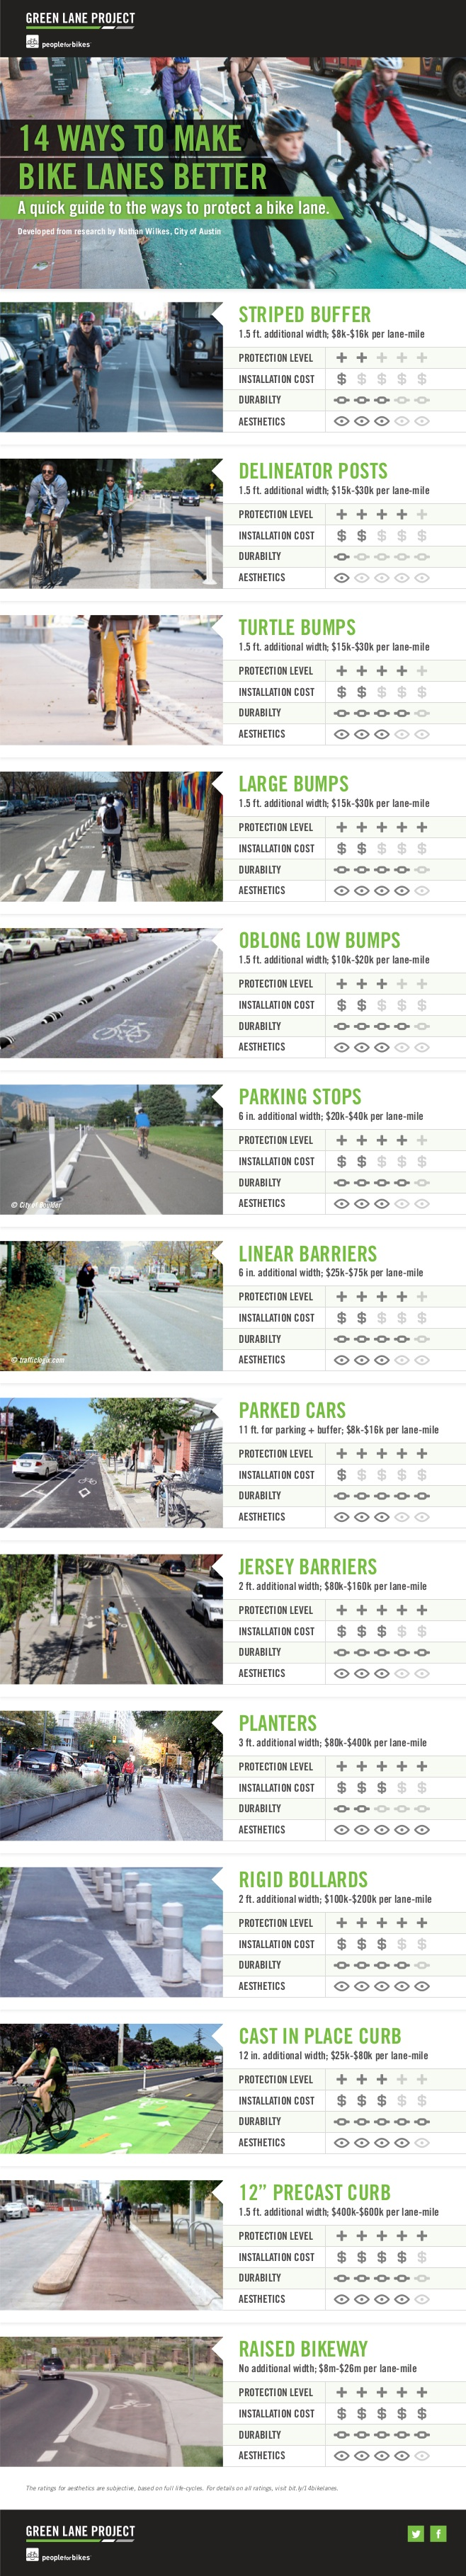 Reference: http://www.peopleforbikes.org/blog/entry/14-ways-to-make-bike-lanes-better-the-infographic